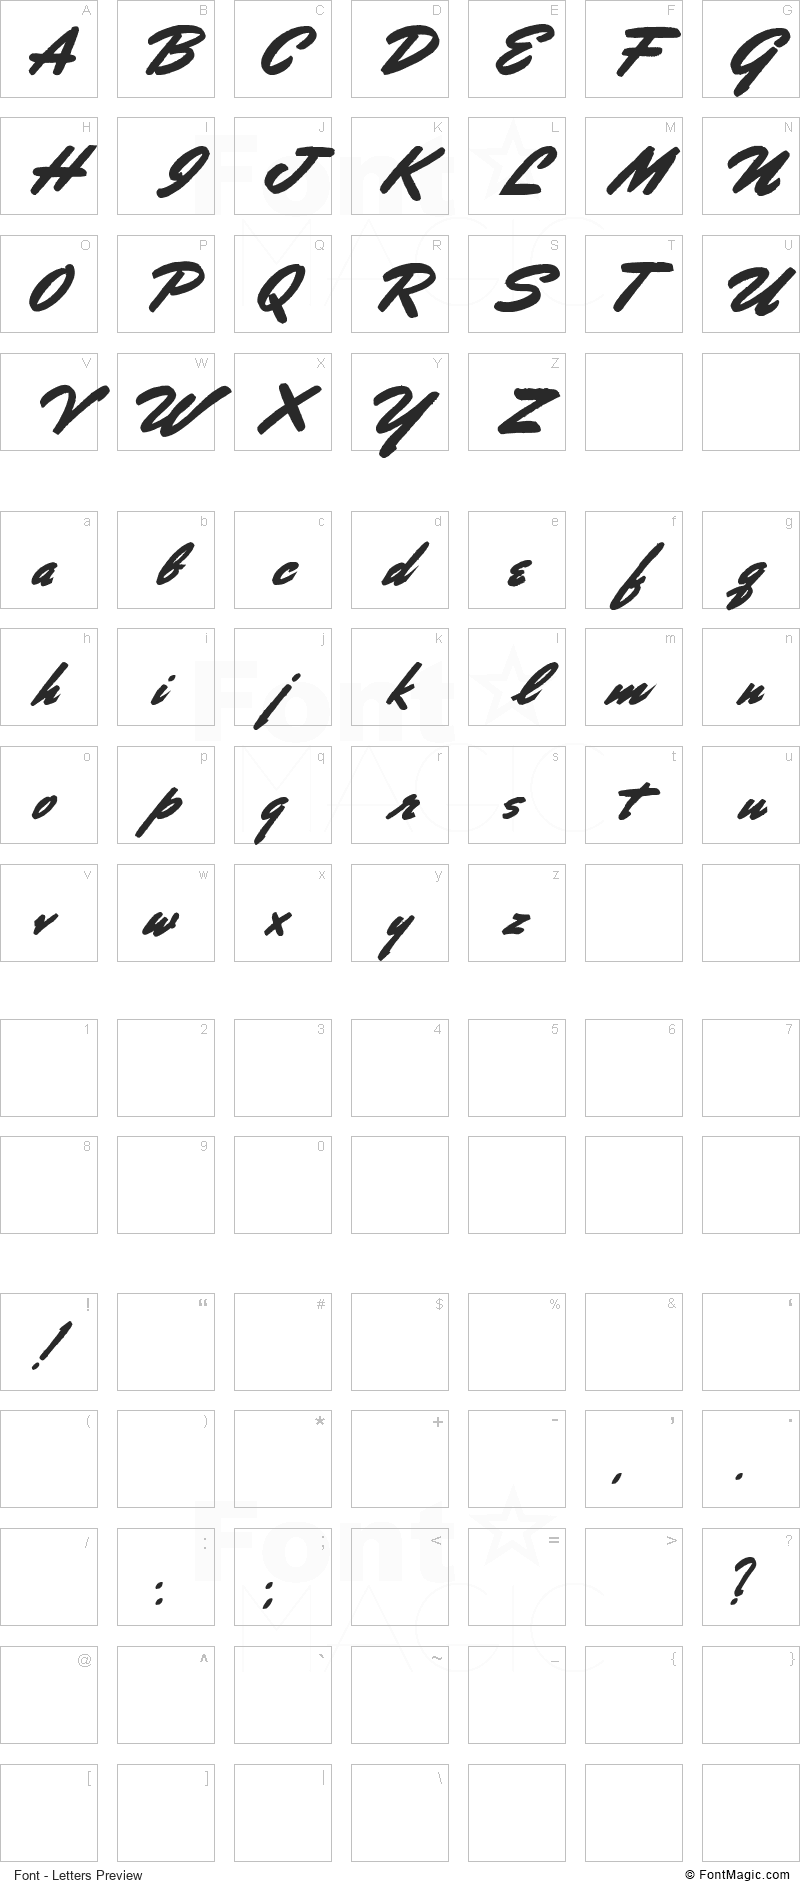 Porongo Font - All Latters Preview Chart